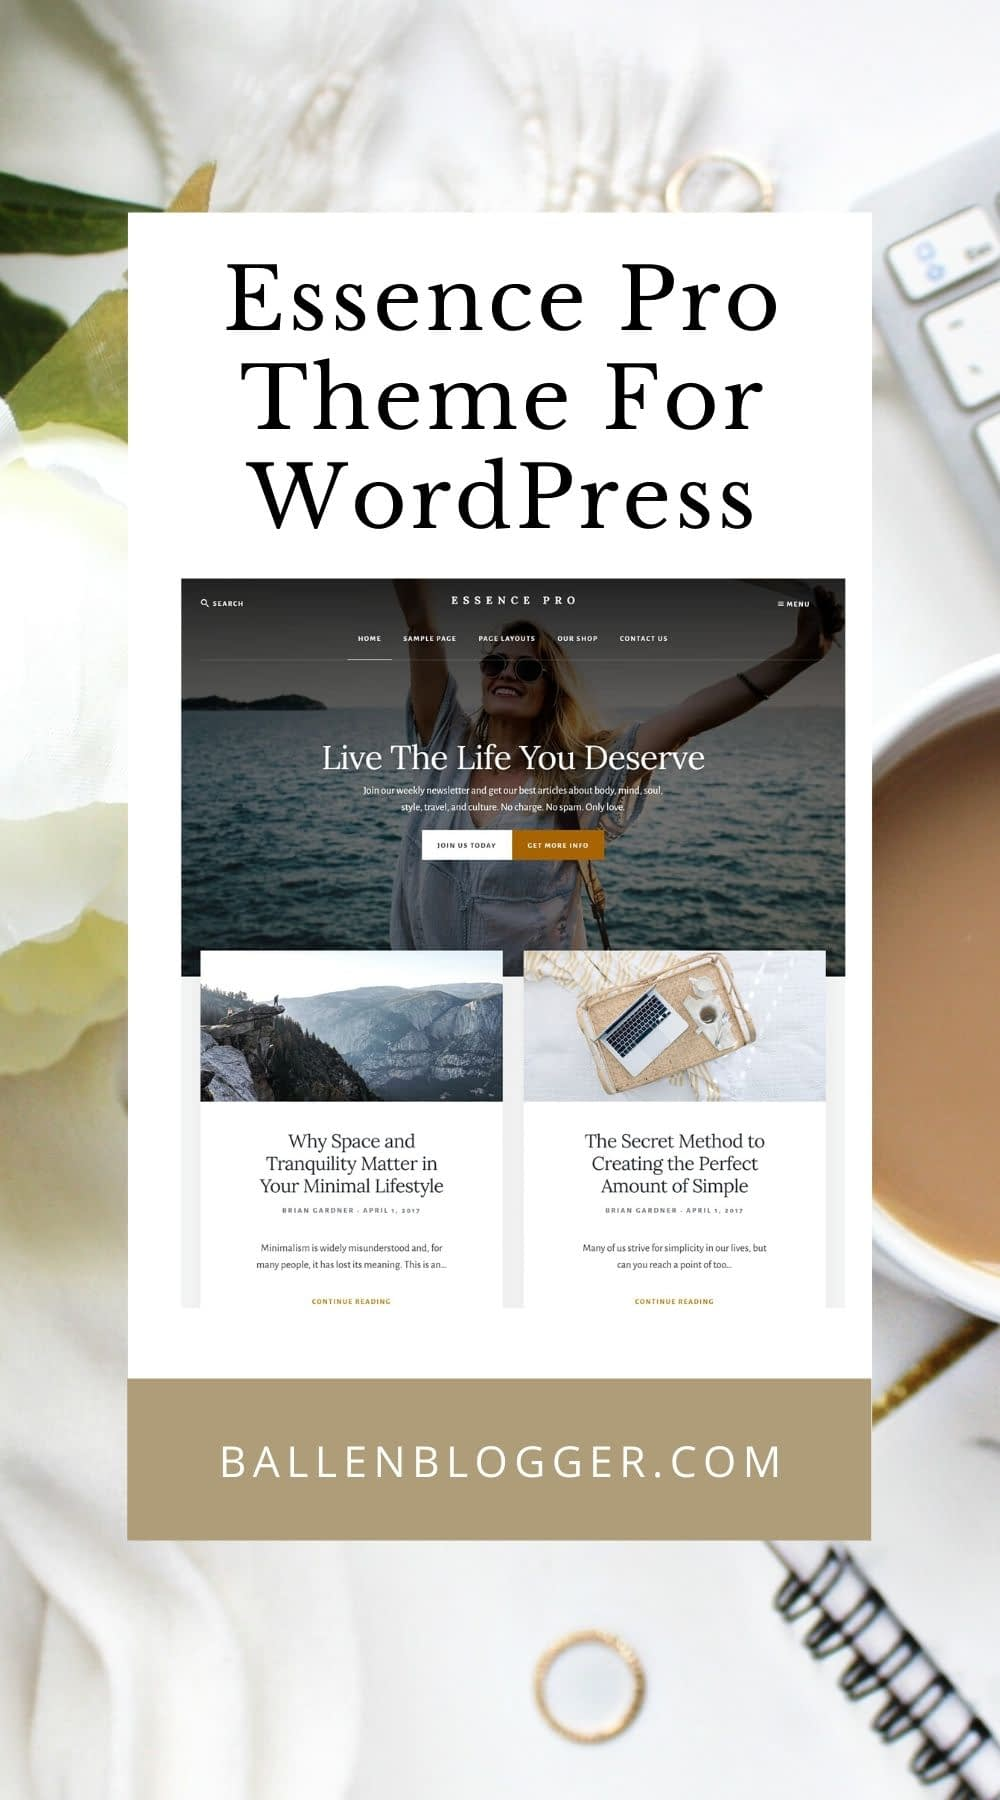 This tutorial will show you how to install and set up the Essence Pro Theme on WordPress.